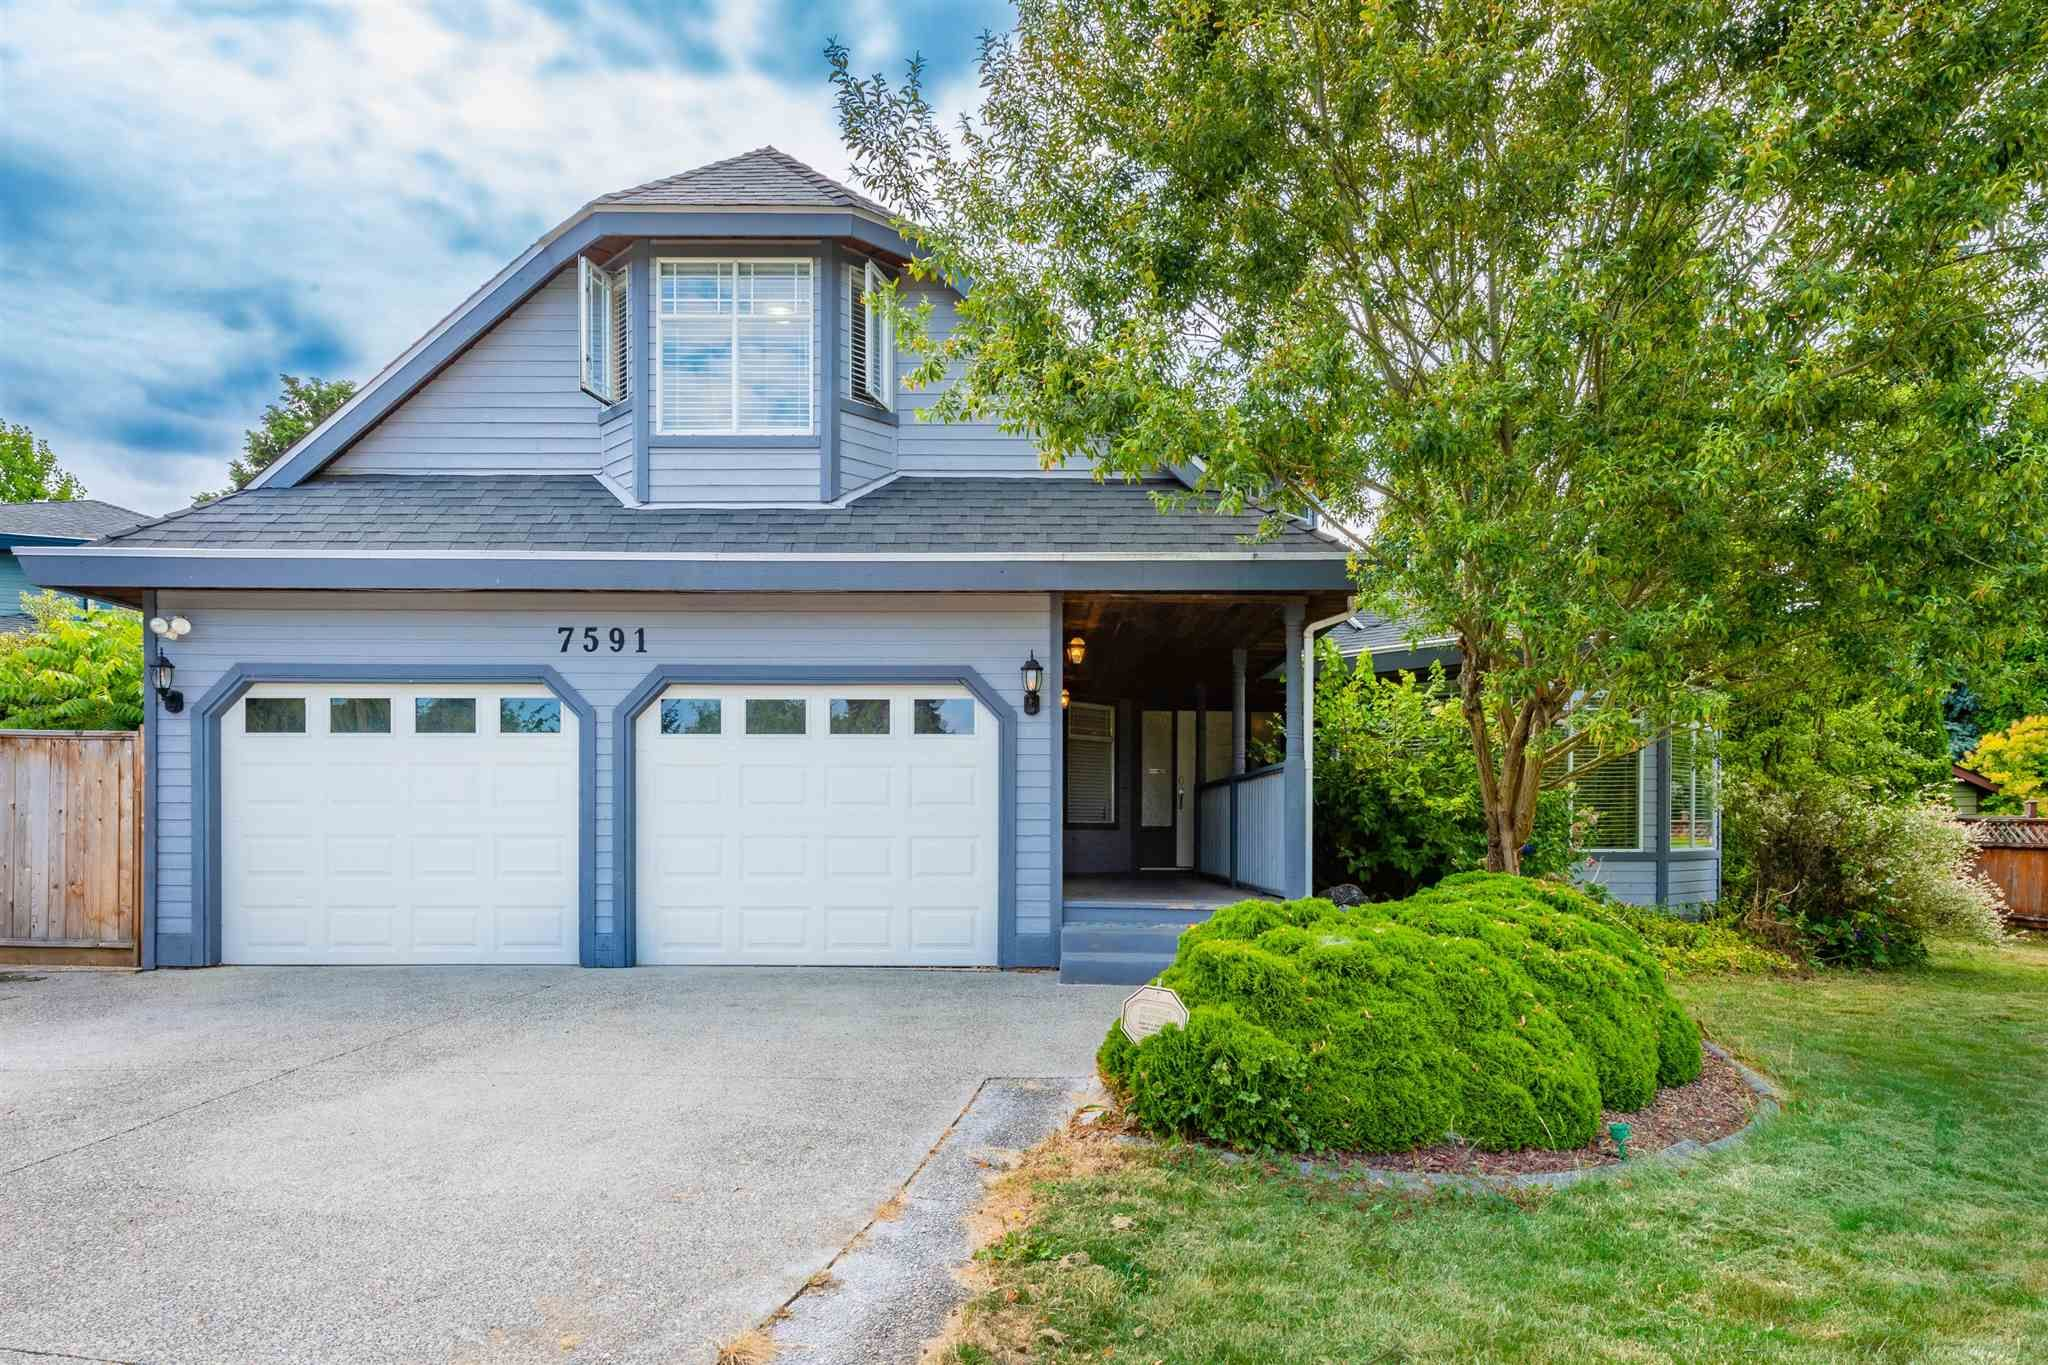 Main Photo: 7591 150A Street in Surrey: East Newton House for sale : MLS®# R2599996